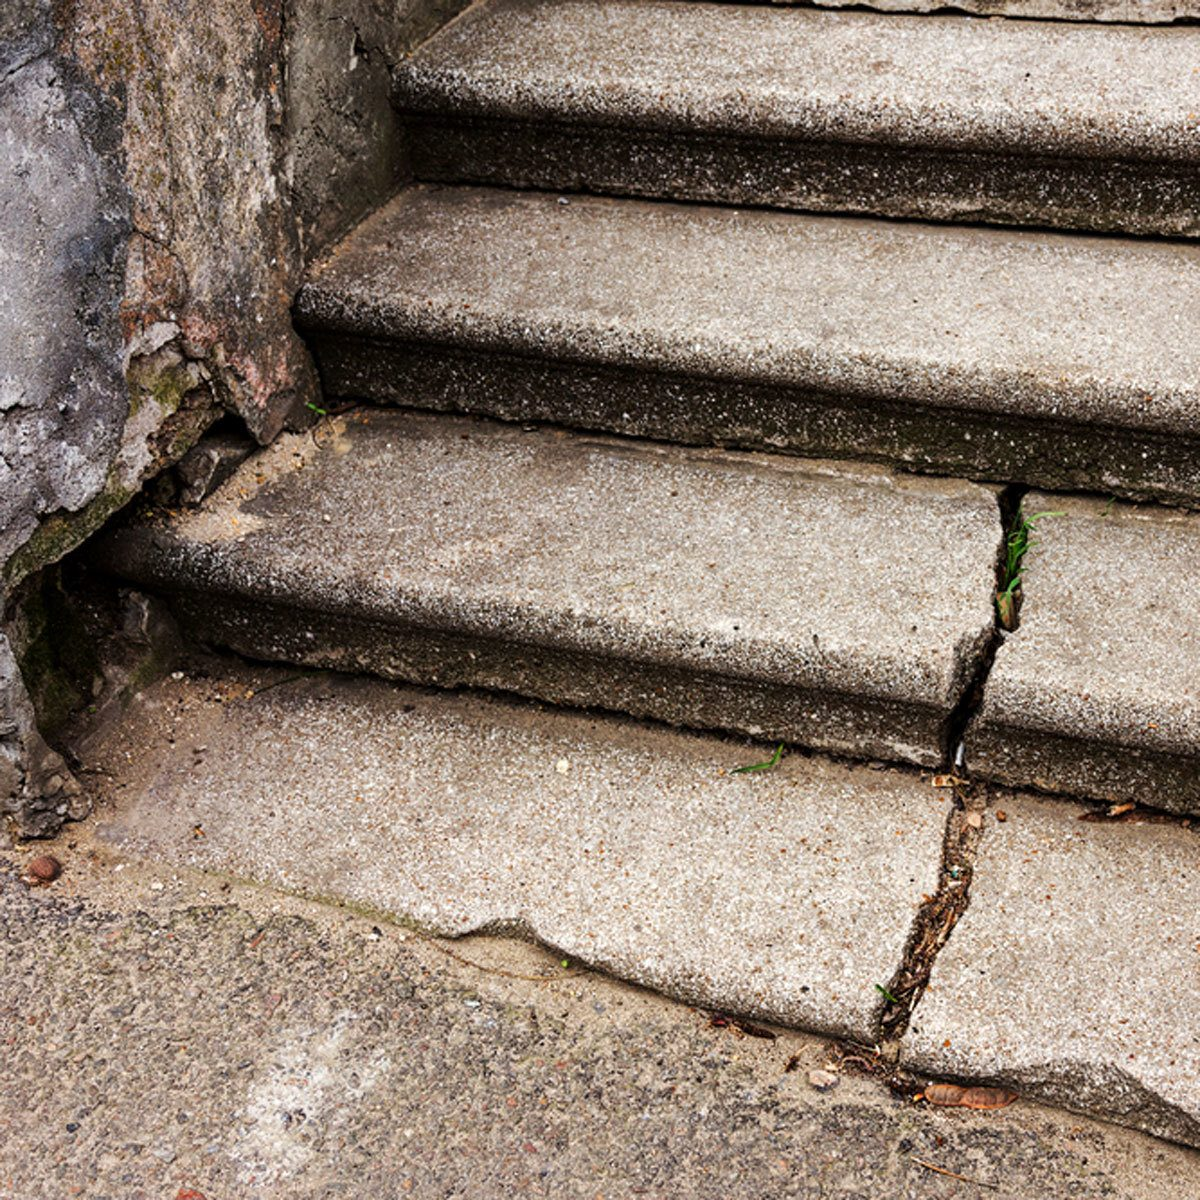 dfh17-sep020_11 crack cracked concrete steps stairs